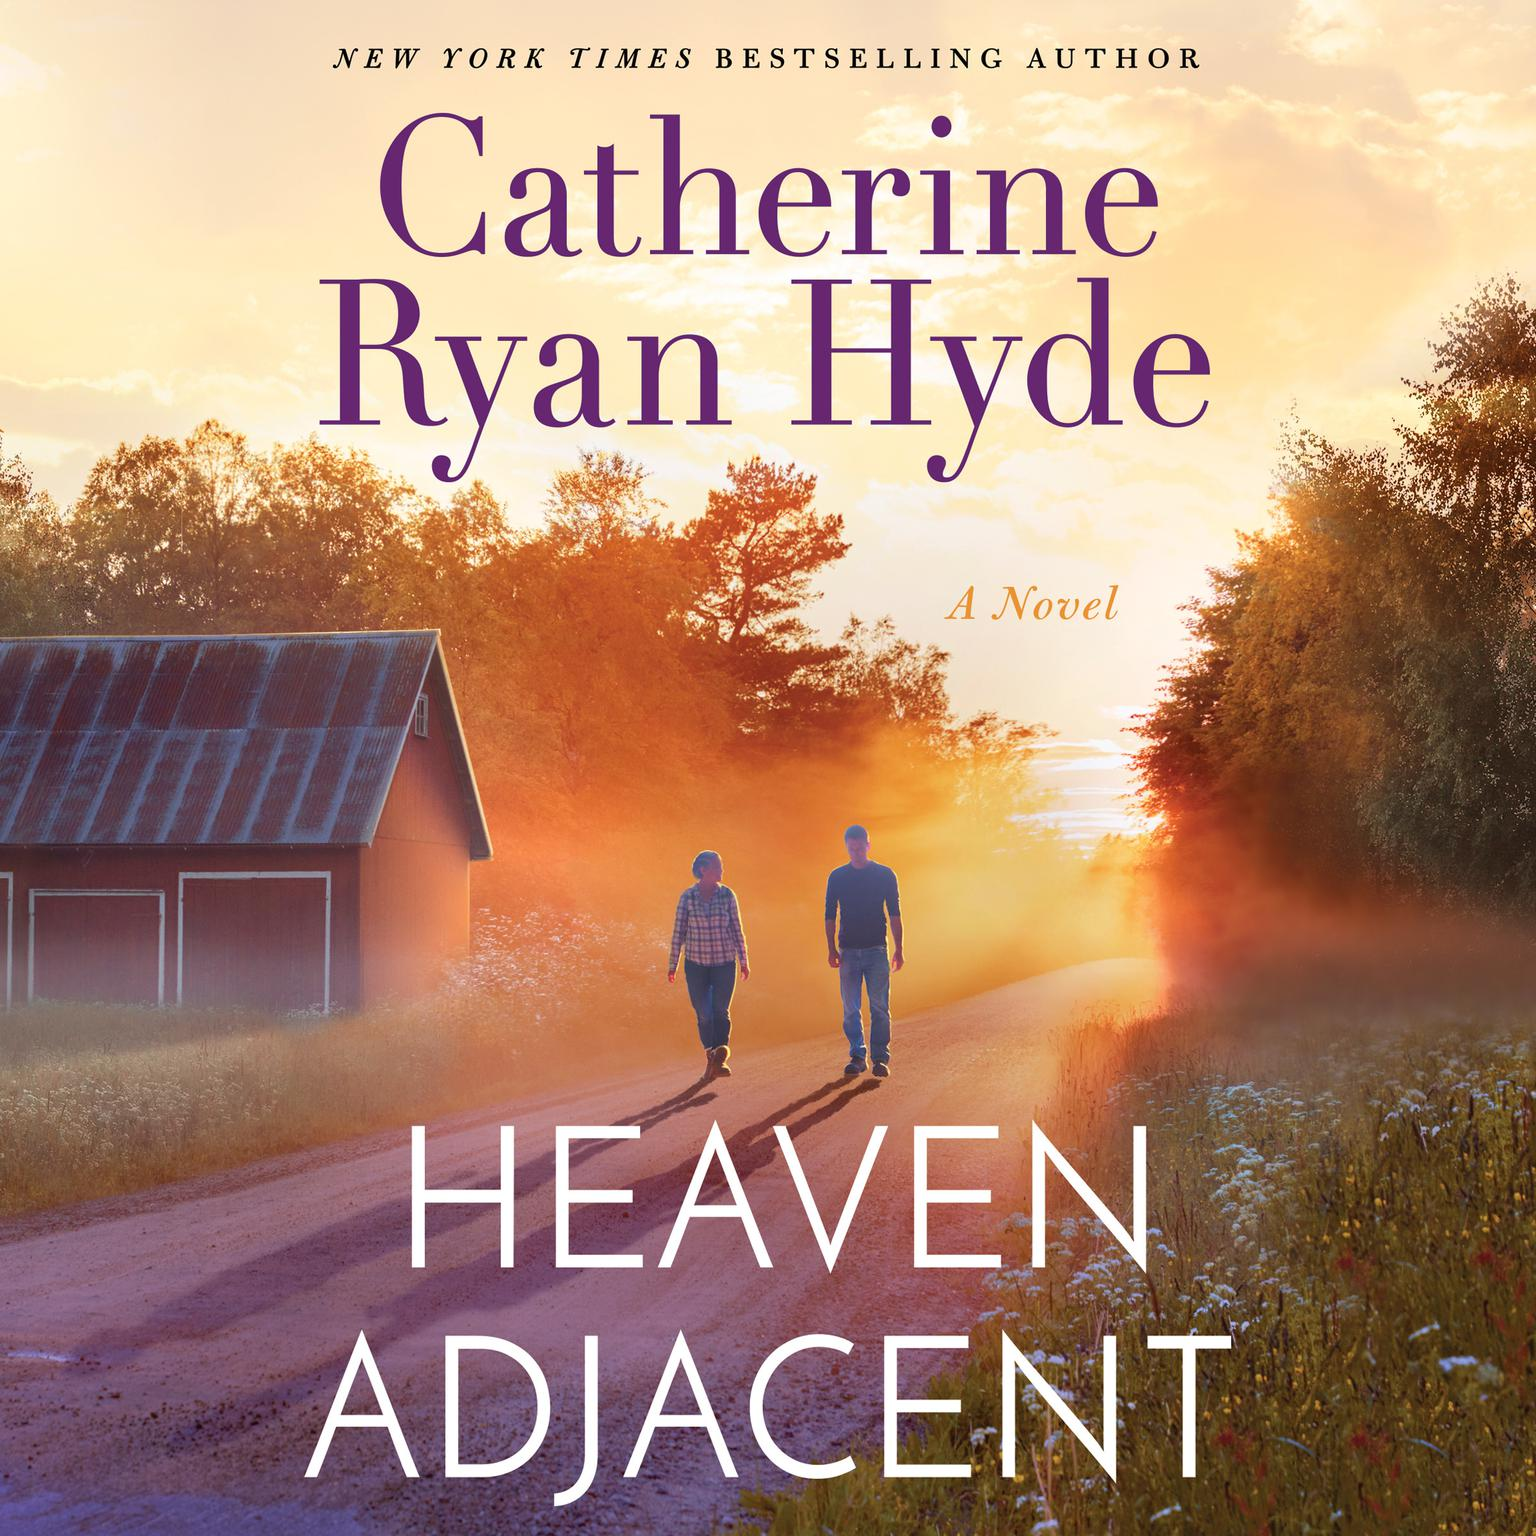 Printable Heaven Adjacent Audiobook Cover Art